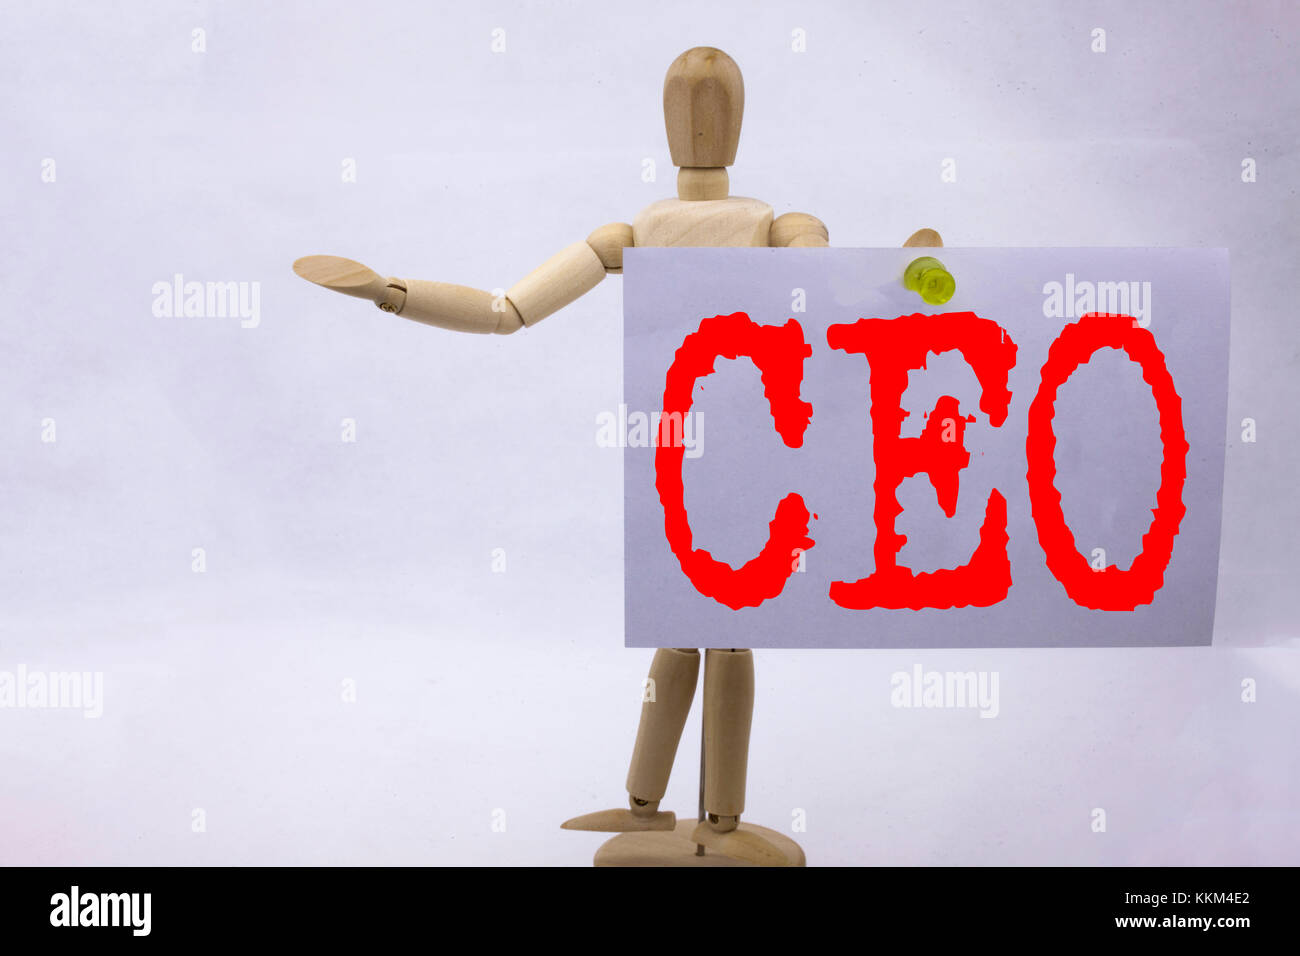 Conceptual hand writing text caption inspiration showing CEO Business concept for Operating Leader Business Executive - Stock Image